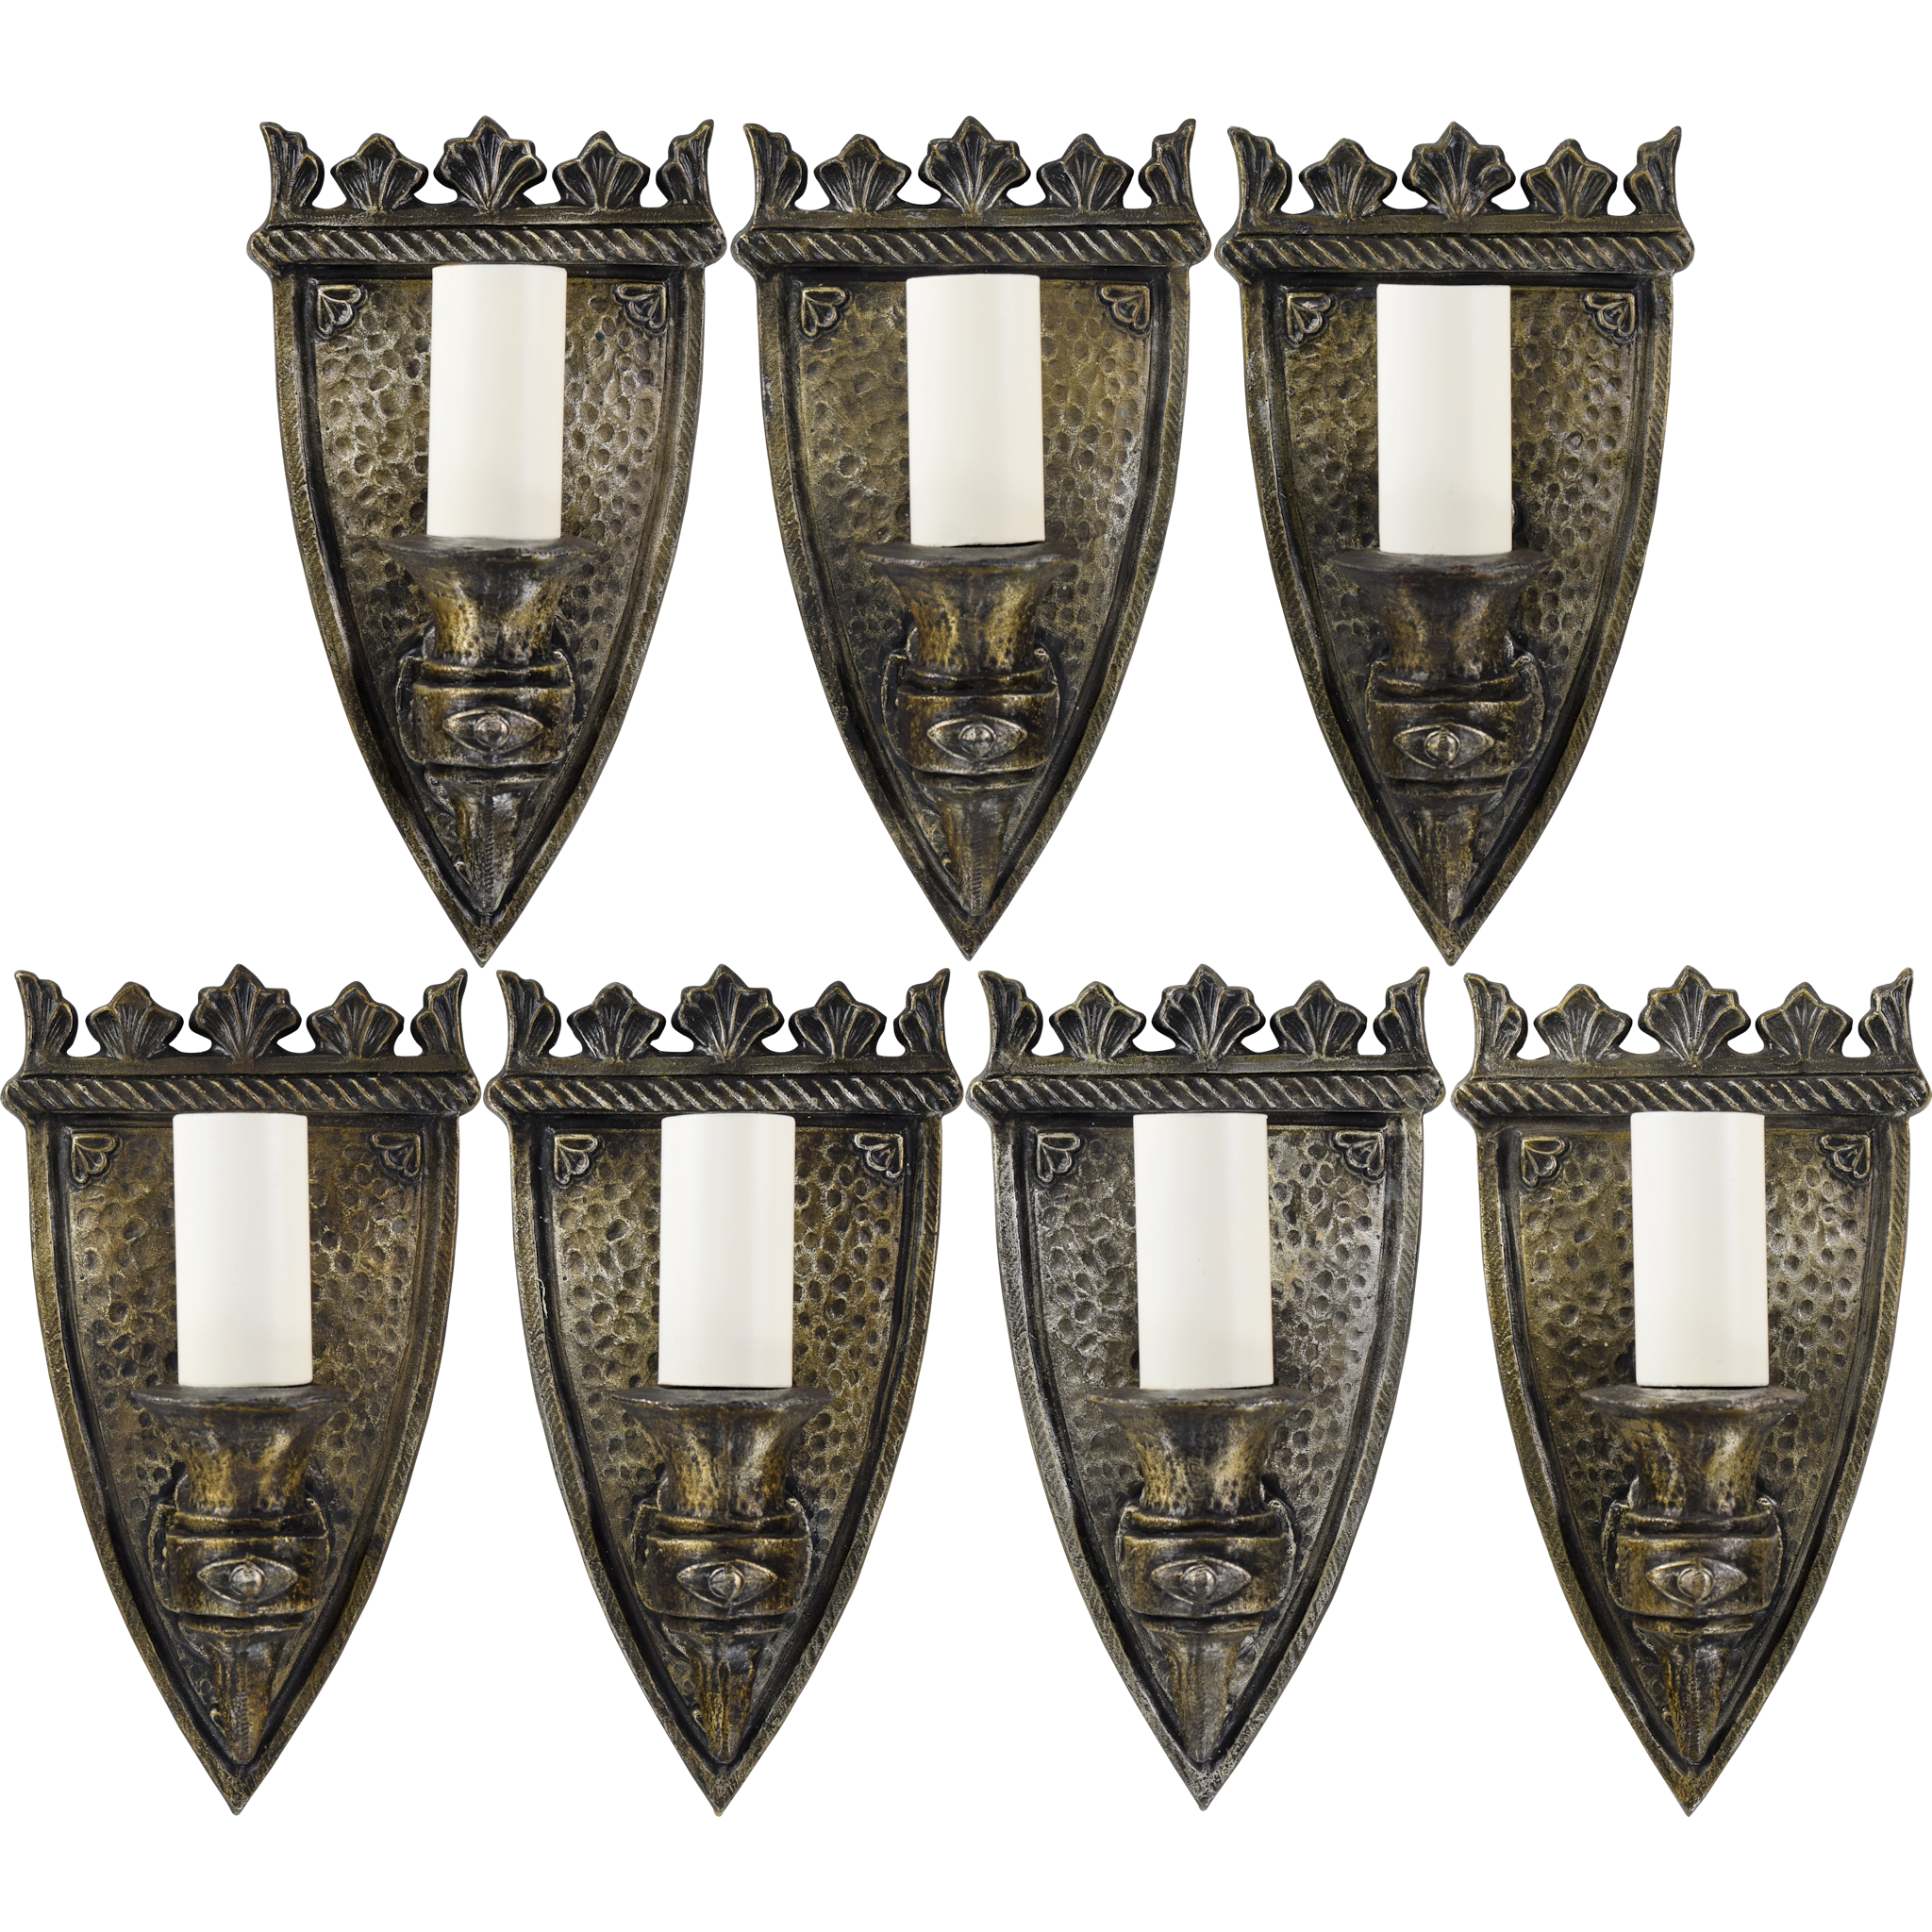 Set 7 Vintage Gothic Shield Wall Light Sconces